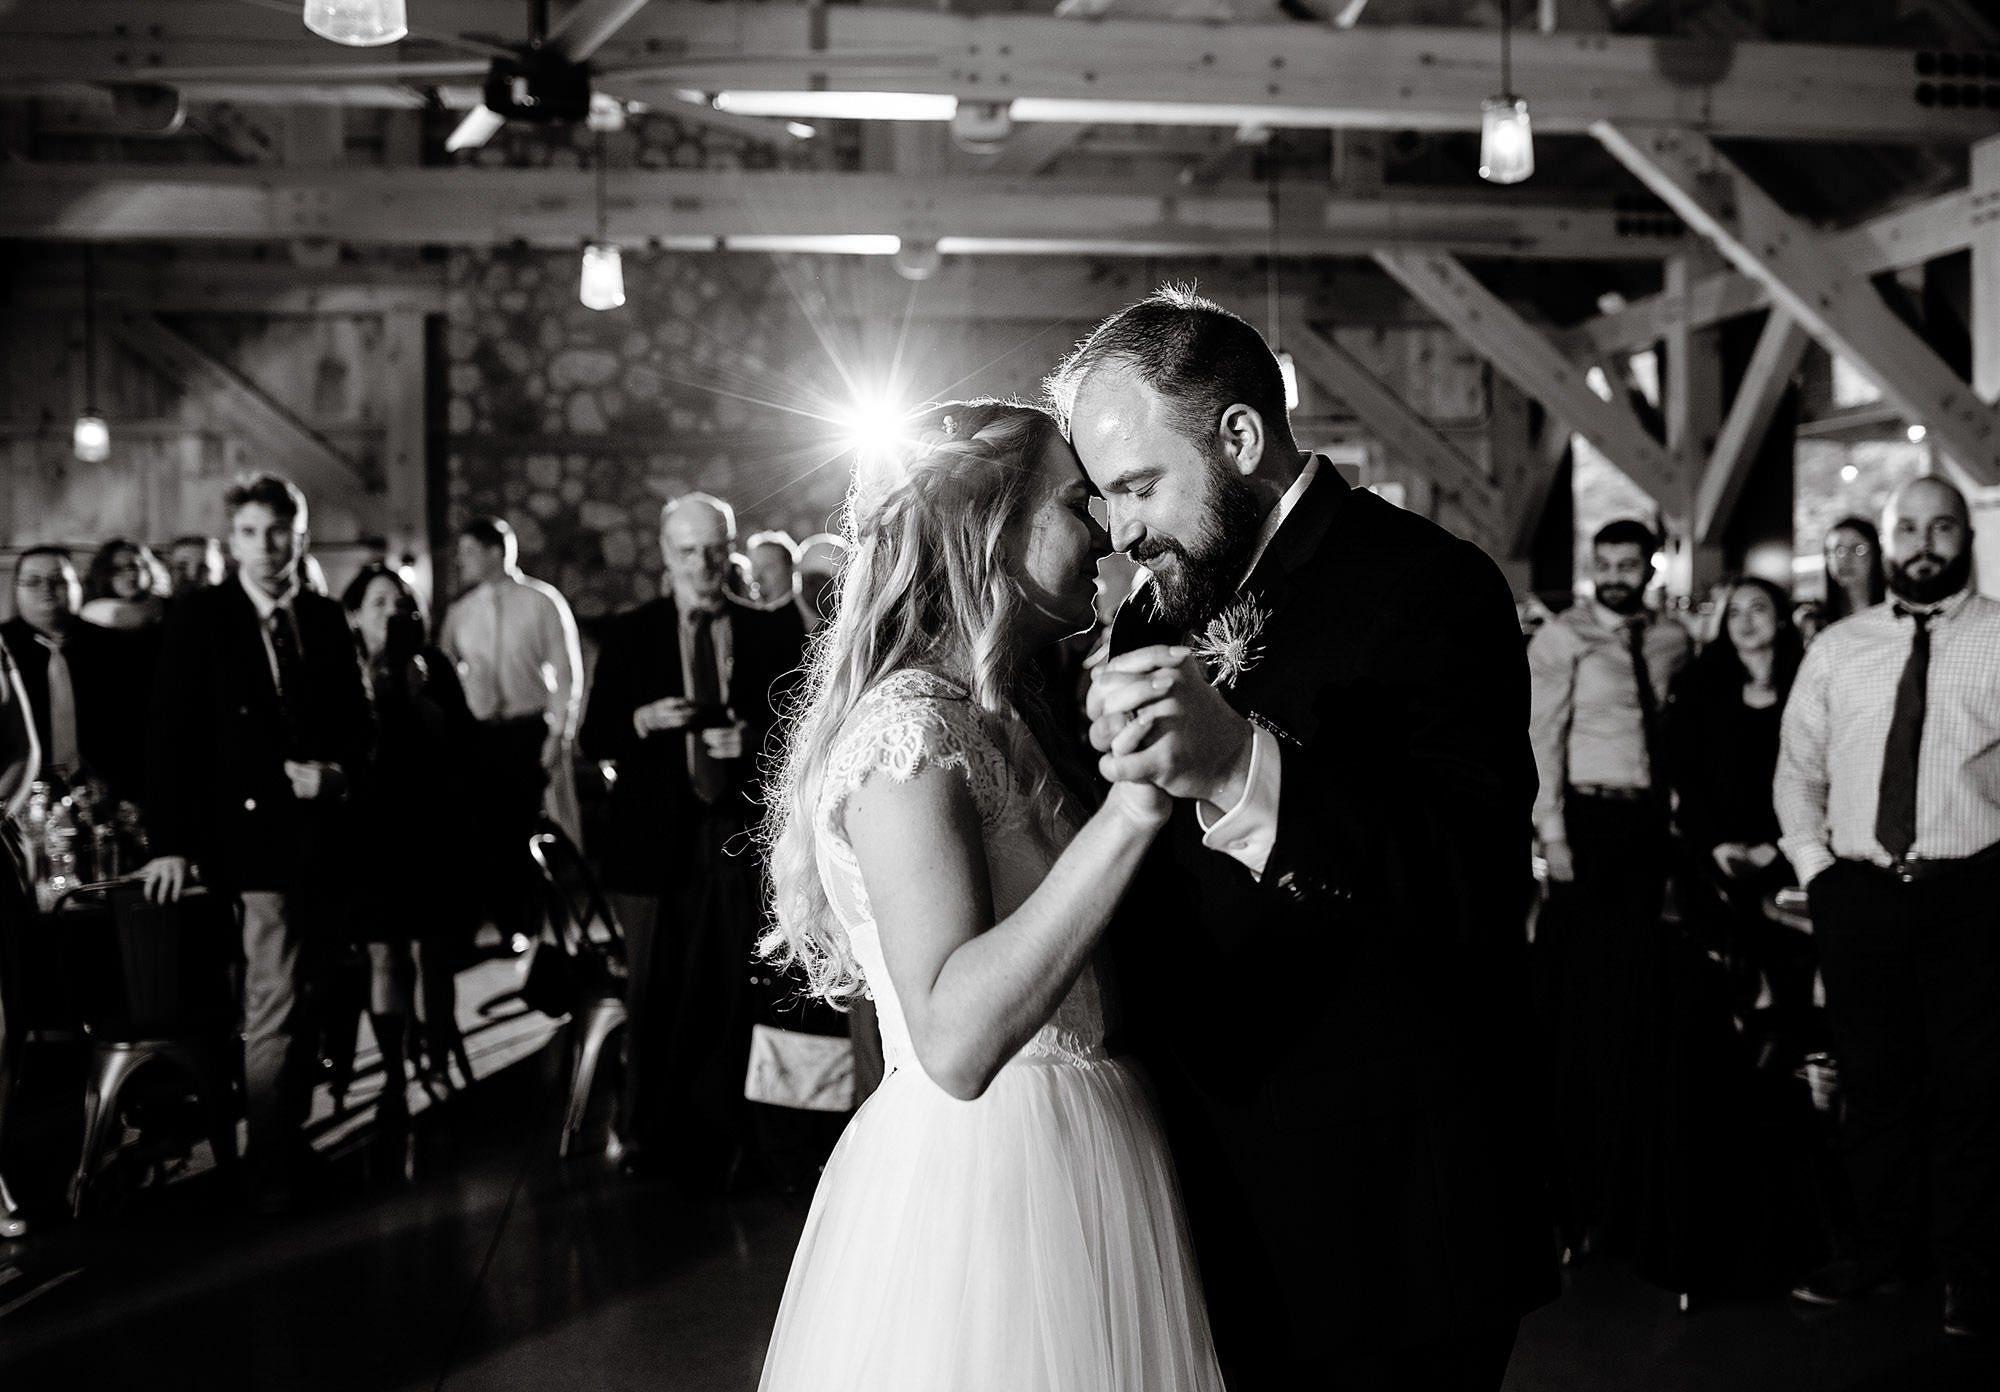 The bride and groom share their first dance during their Mad River Barn wedding reception.